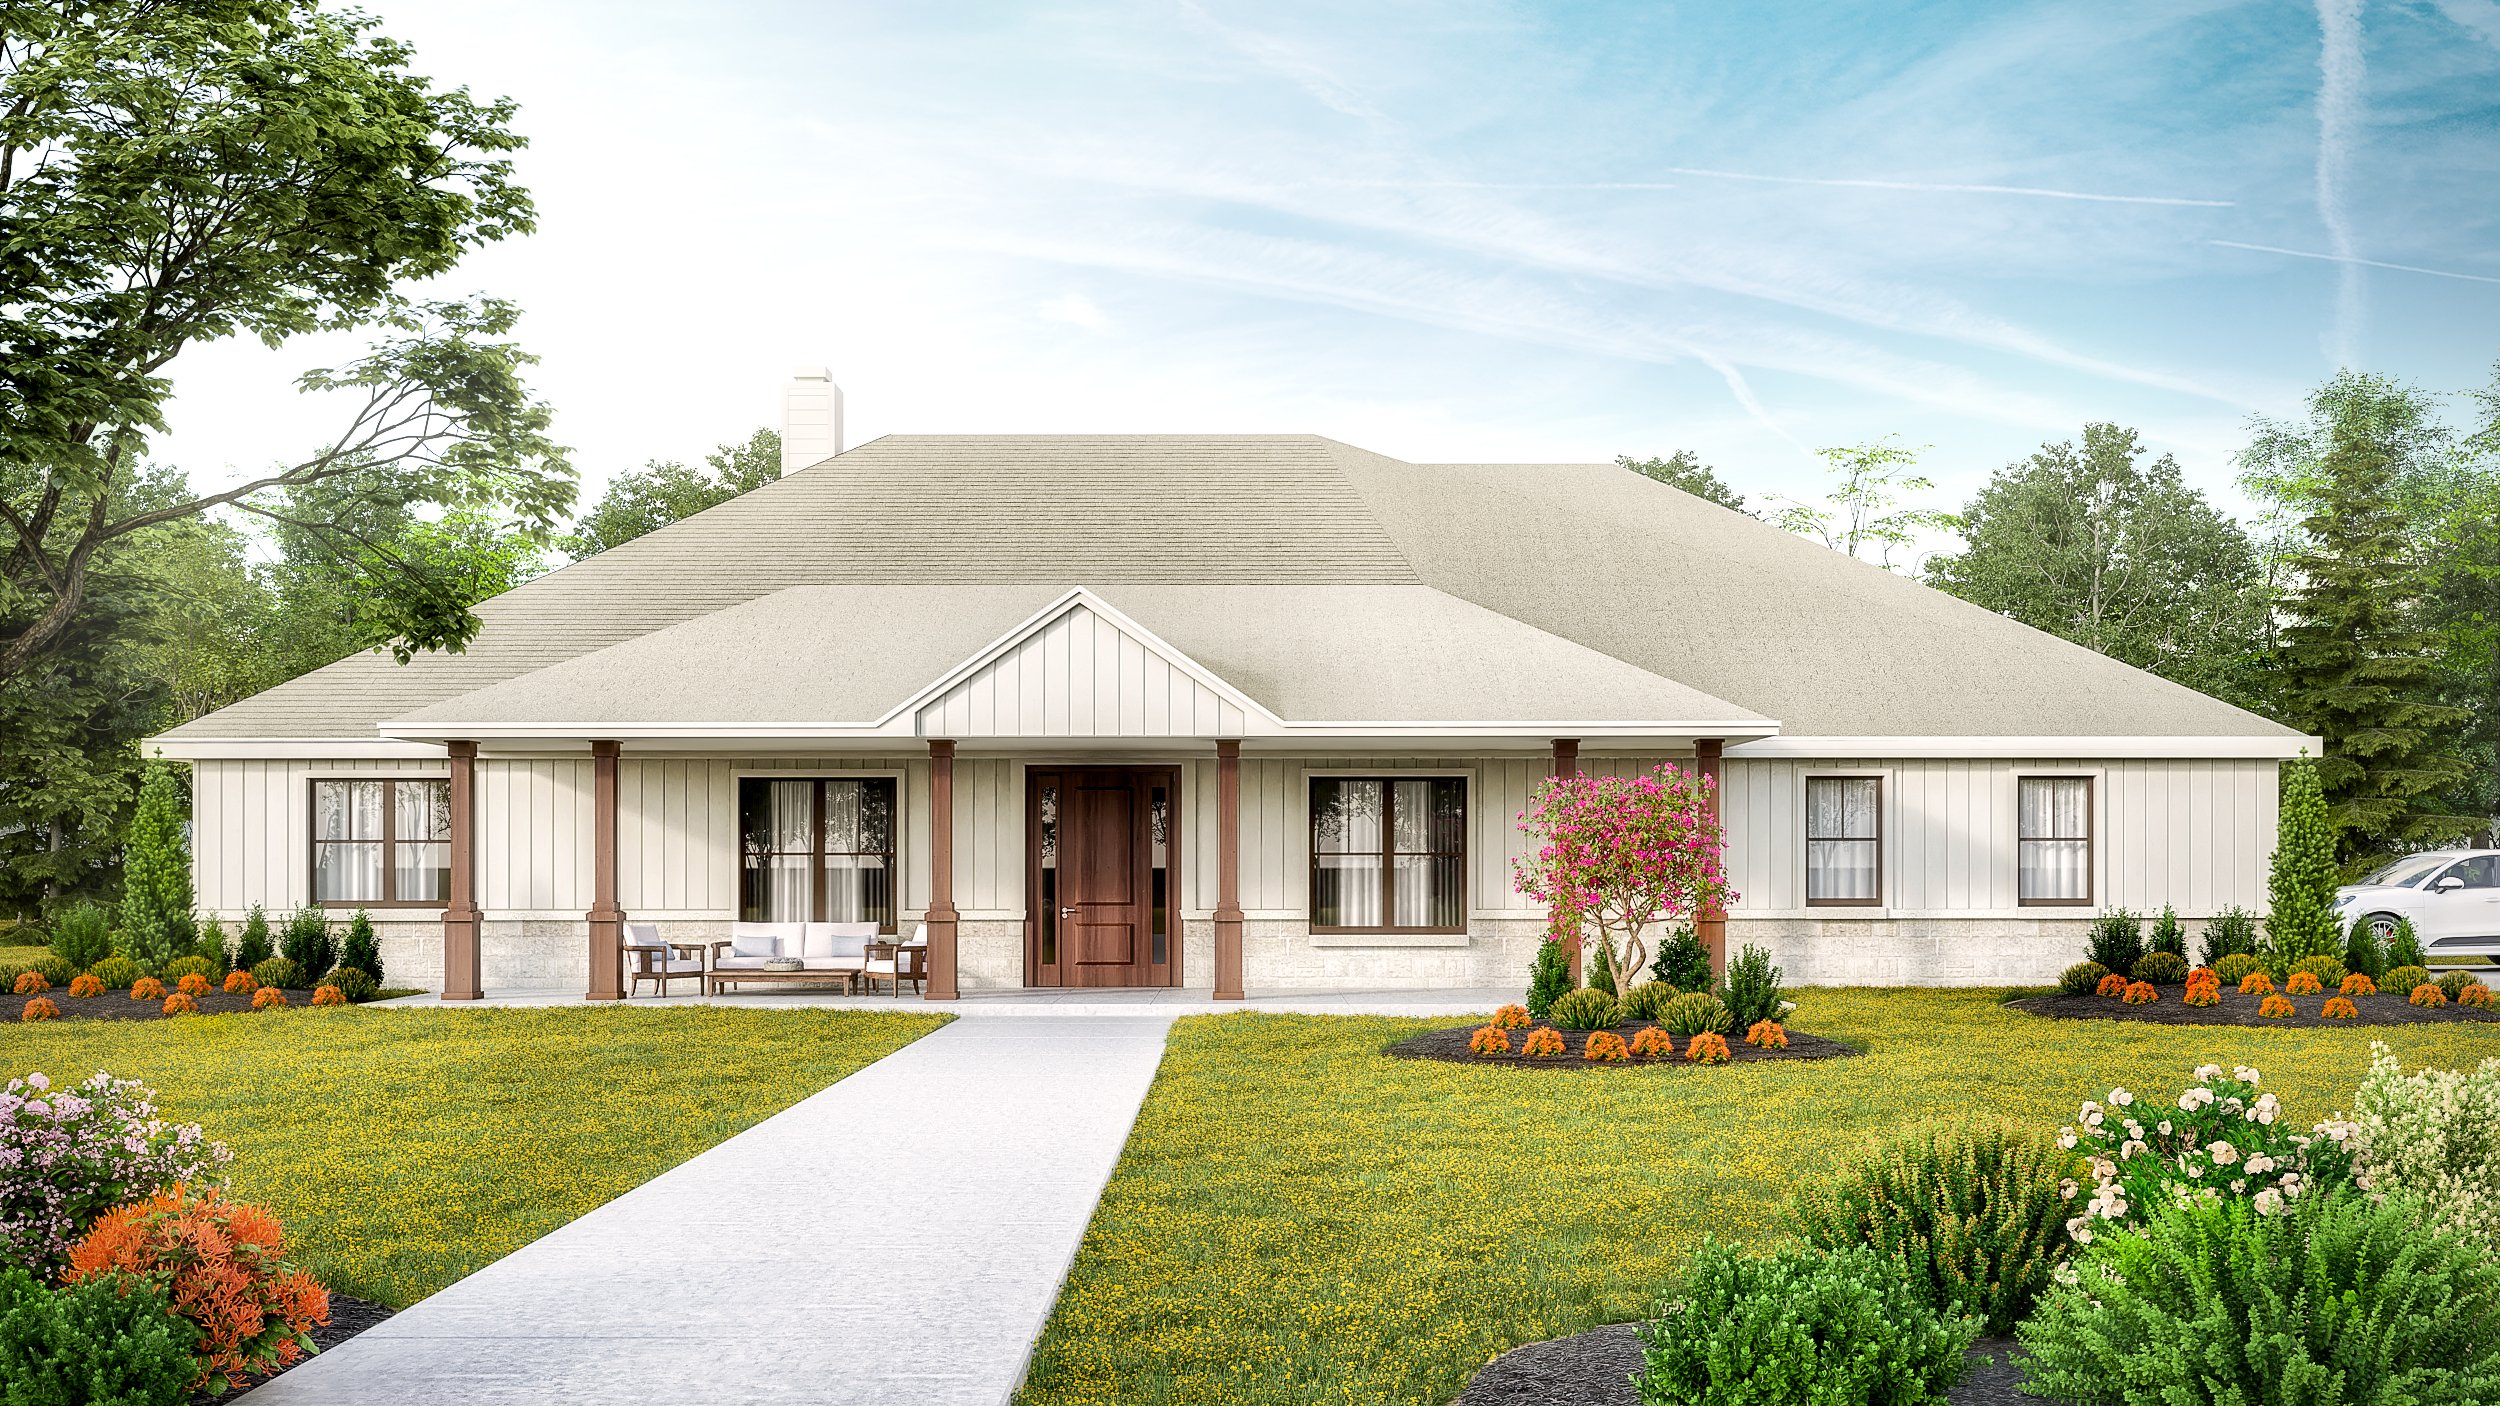 Beds: 4  Baths: 3.5  The Garrison is a 4 bedroom, 3 and a half bath home with a large open living area, a study, a formal dining room, a butler's pantry, spacious utility room and a 2 car garage.   Introductory Pricing $425,450